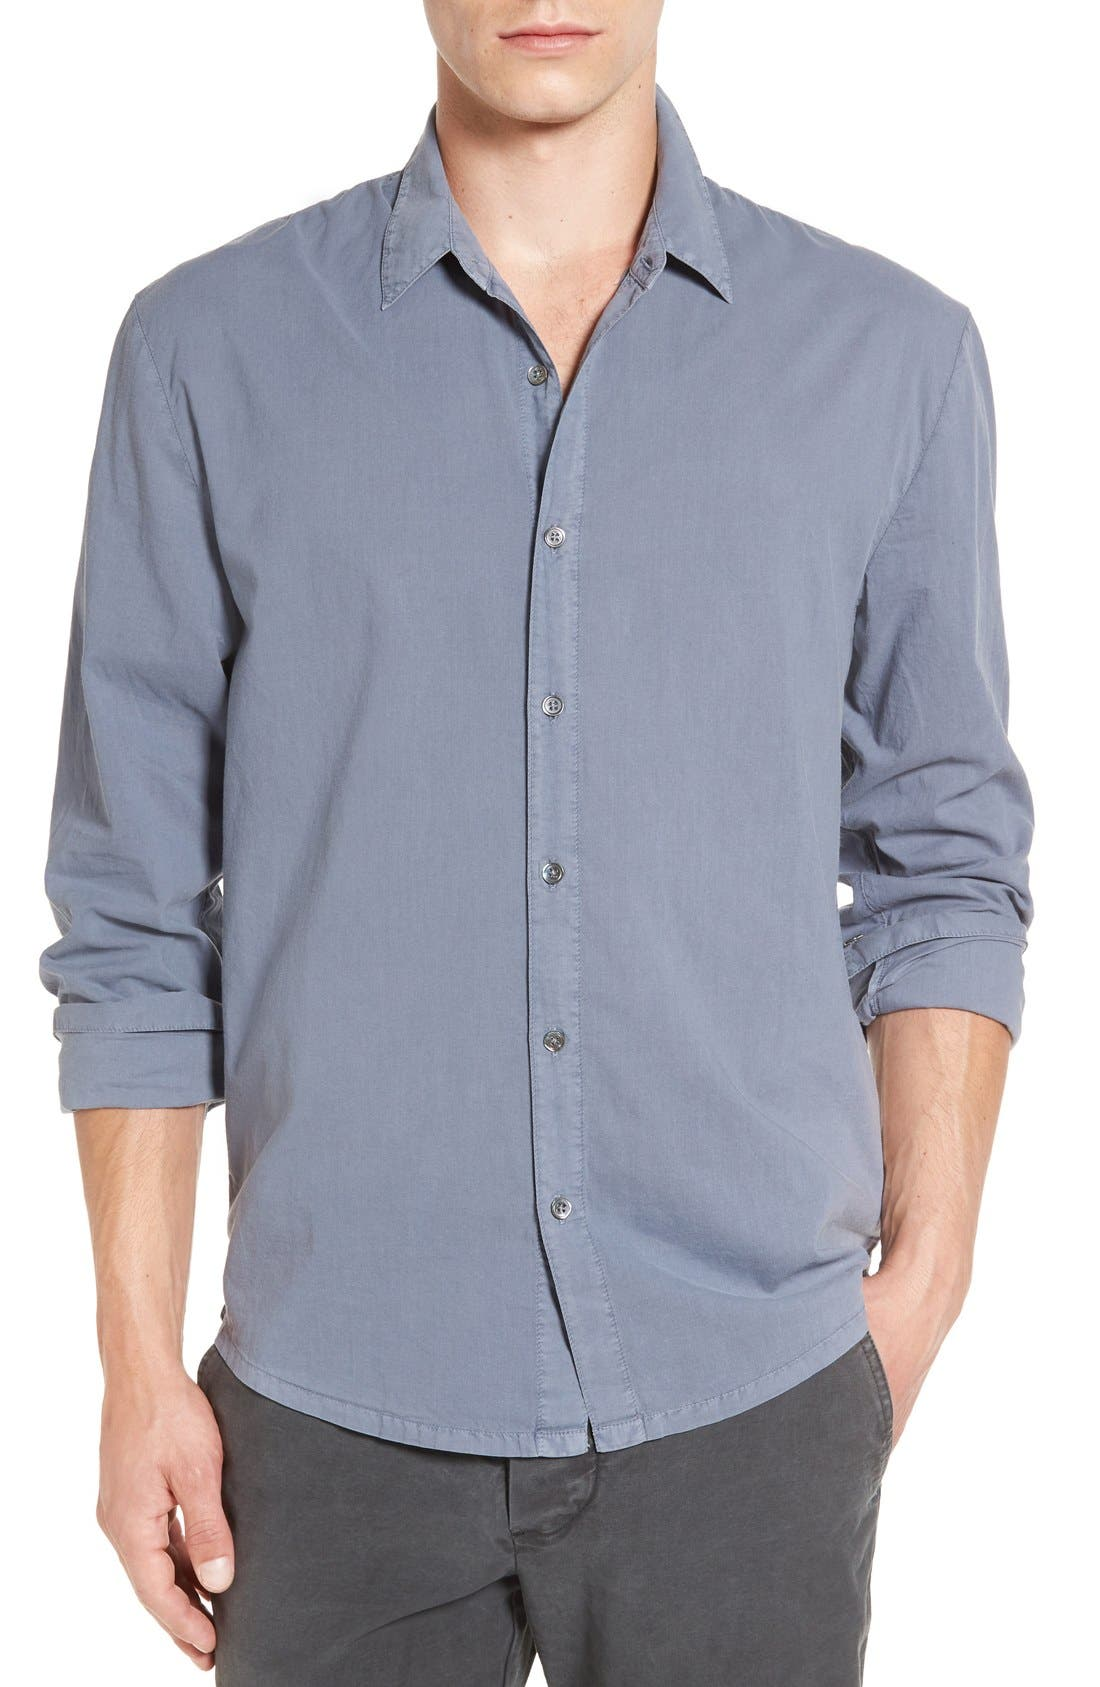 Alternate Image 1 Selected - James Perse 'Classics' Cotton Lawn Shirt